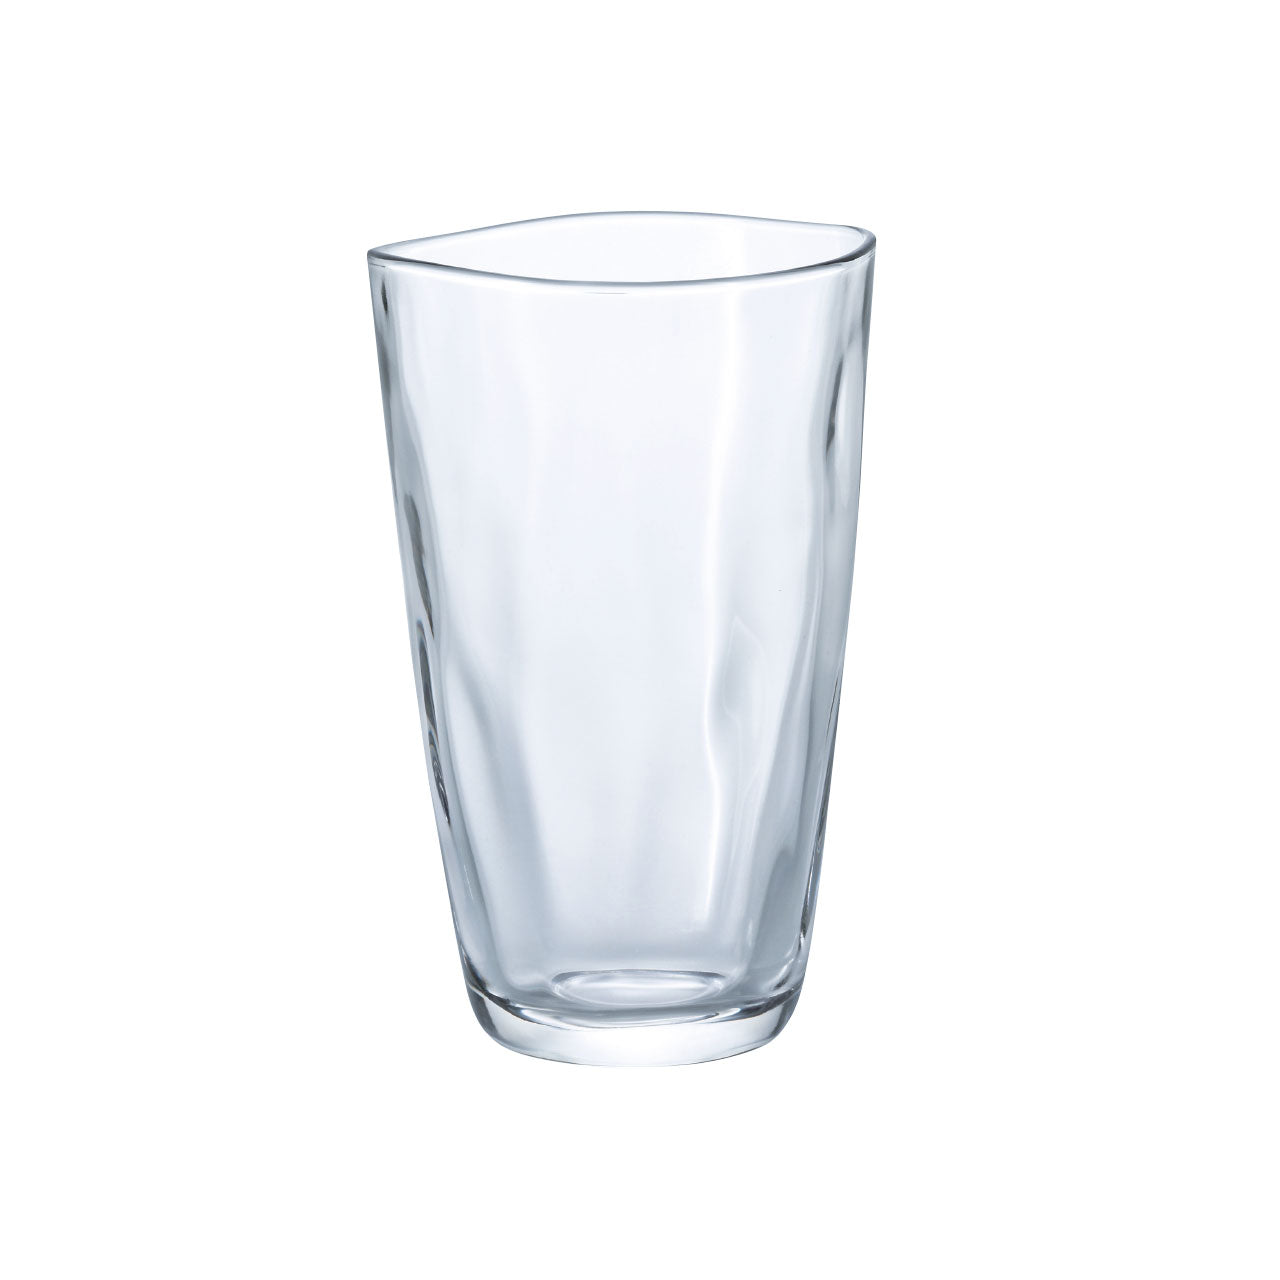 Organic Shaped Glass Cup Tumbler 12 fl oz